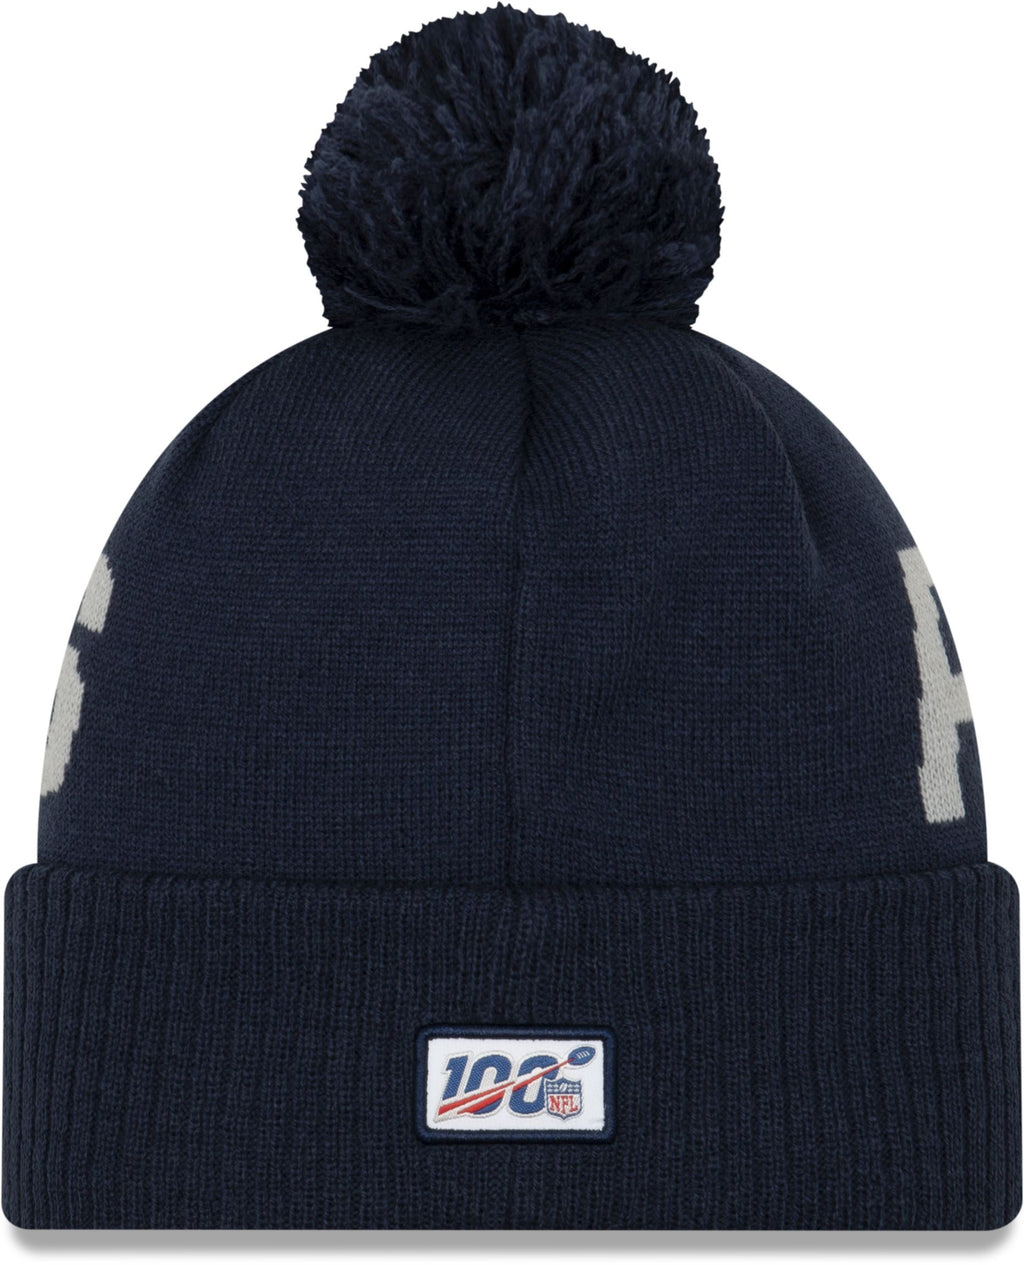 New Era ONF19 Cold Weather New England Patriots Bobble Beanie Hat Blue